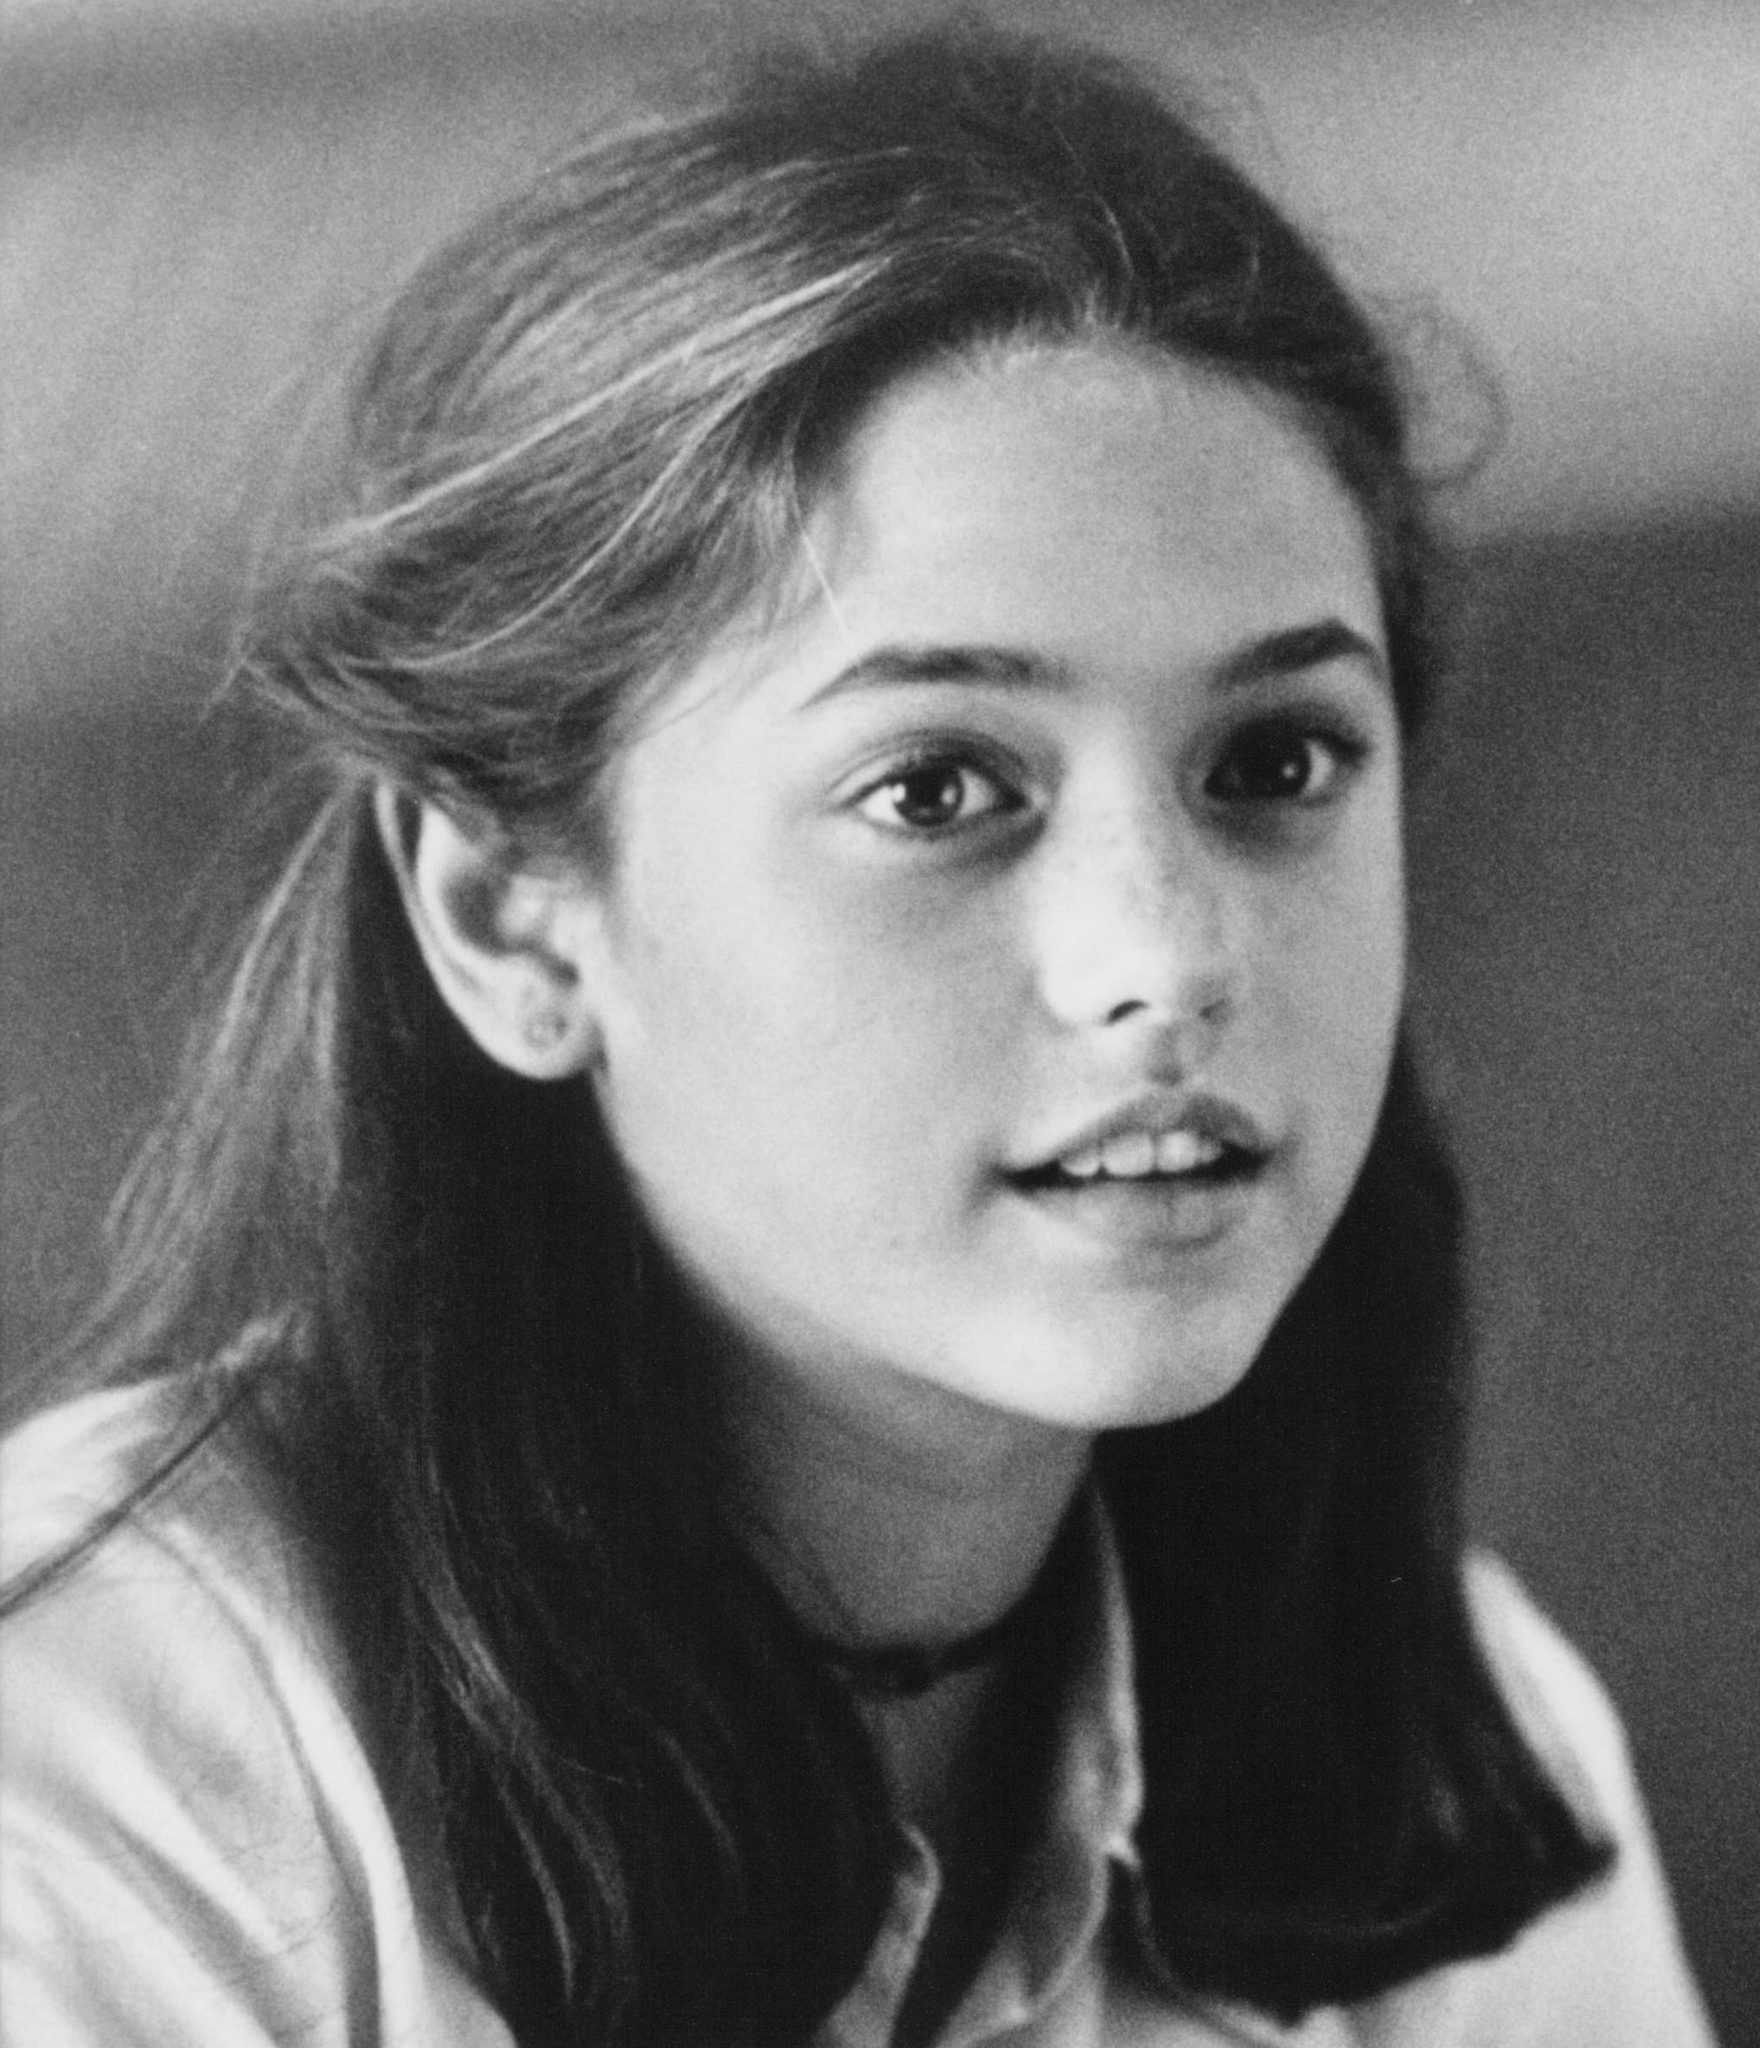 Highschool image of Liesel Pritzker. Liesel Pritzker is the daughter of Irene and Robert Pritzker. She is best known for appearing in 1995 movie, A Little Princess. She also starred along side Harrison Ford in movie Air Force One.